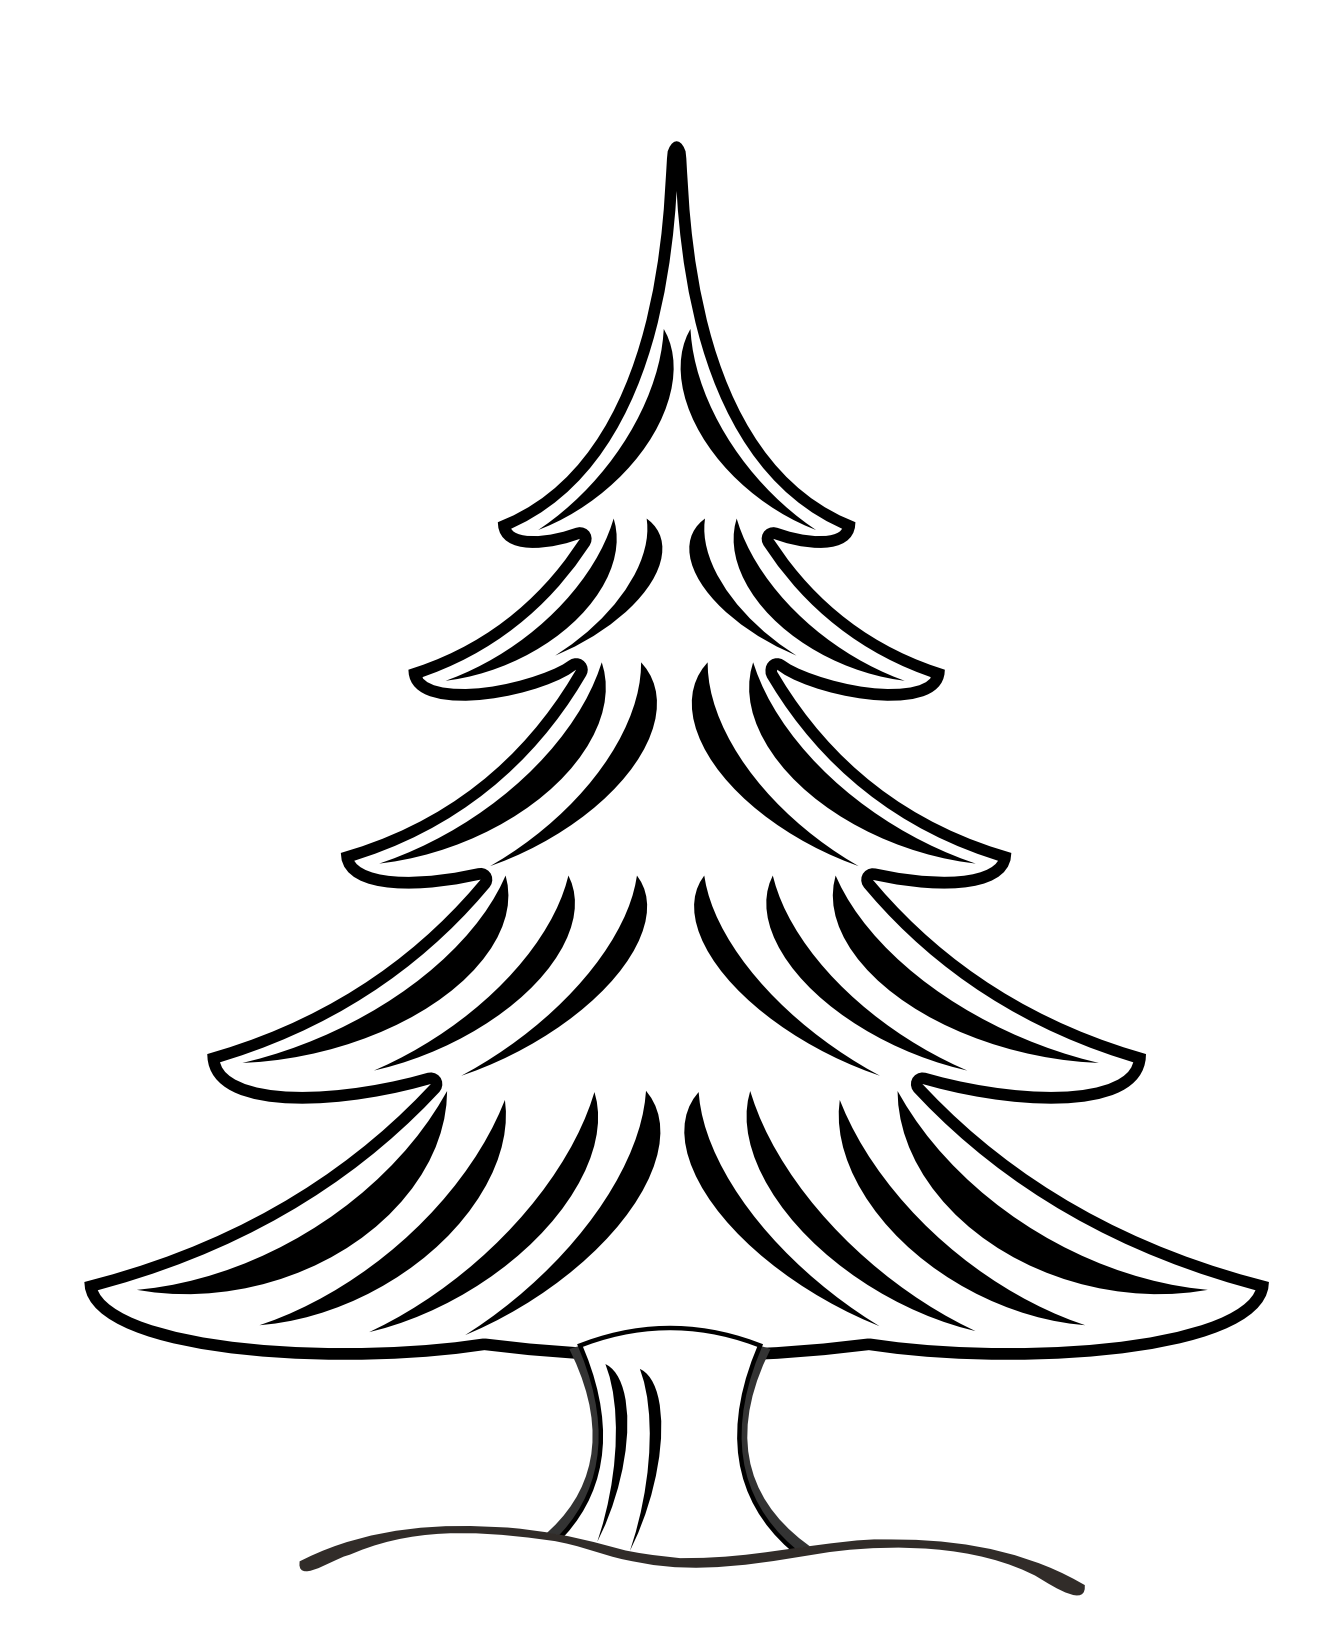 Black and white clipart christmas tree graphic royalty free stock Tree Clipart Black And White | Clipart Panda - Free Clipart Images graphic royalty free stock